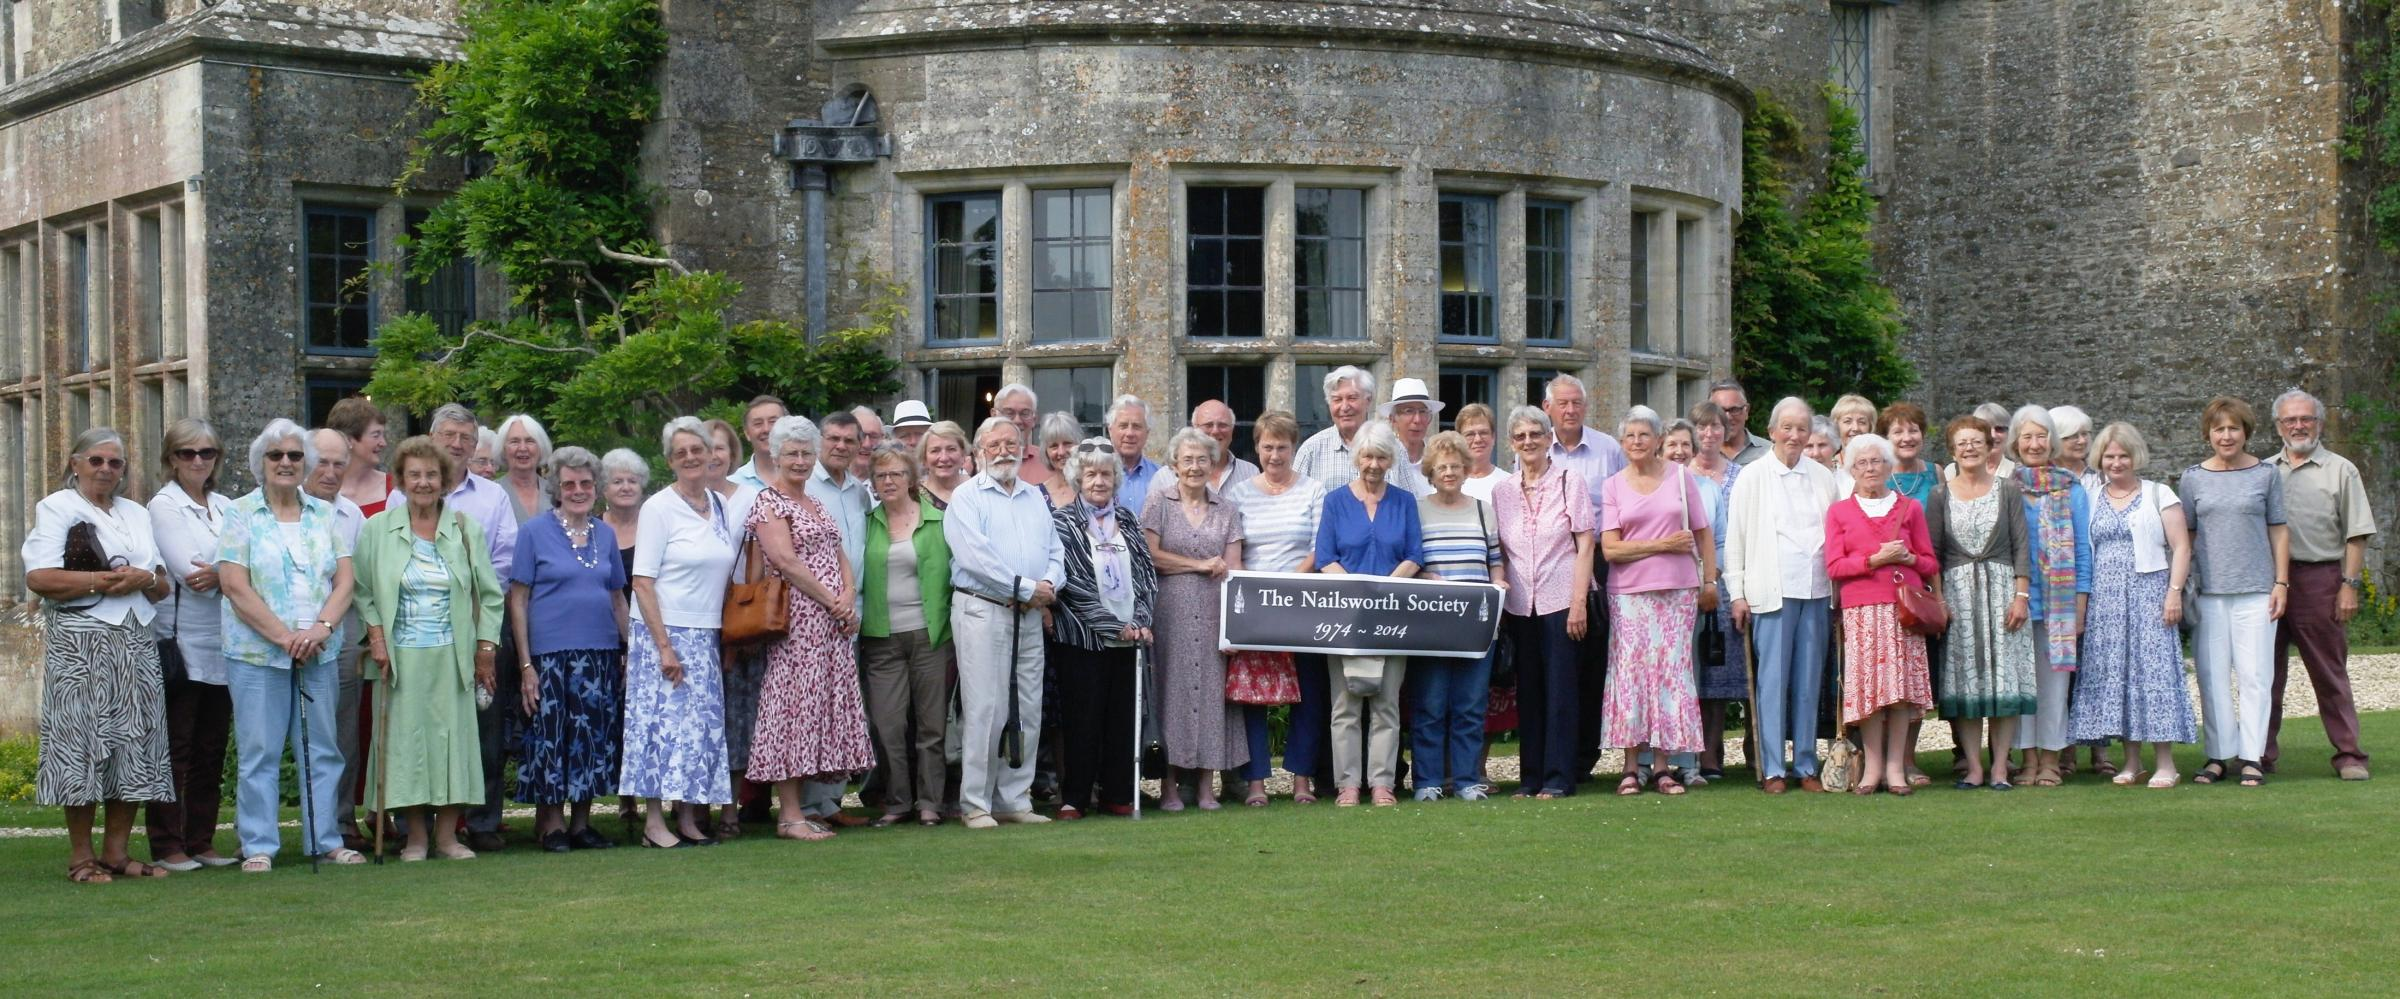 Nailsworth Society celebrate 40 years with a cup of tea